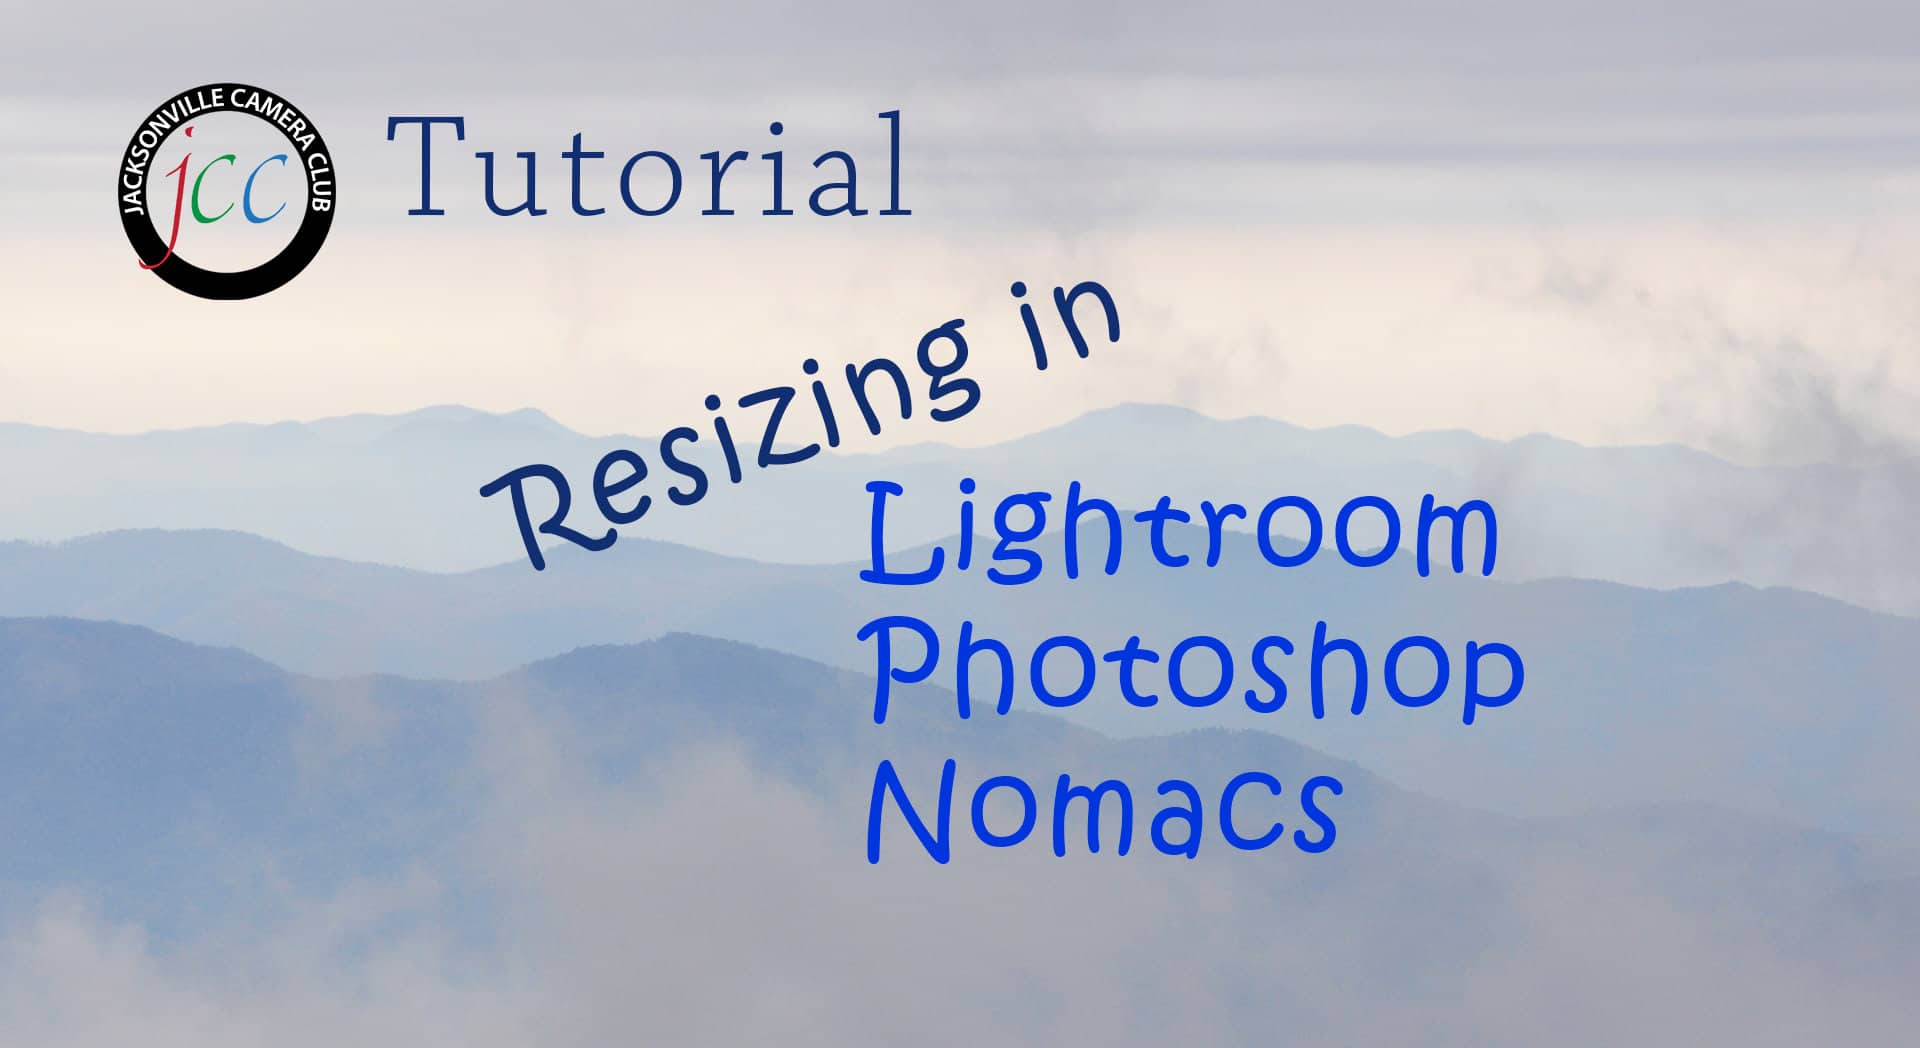 jcc tutorial resizing lr ps nm